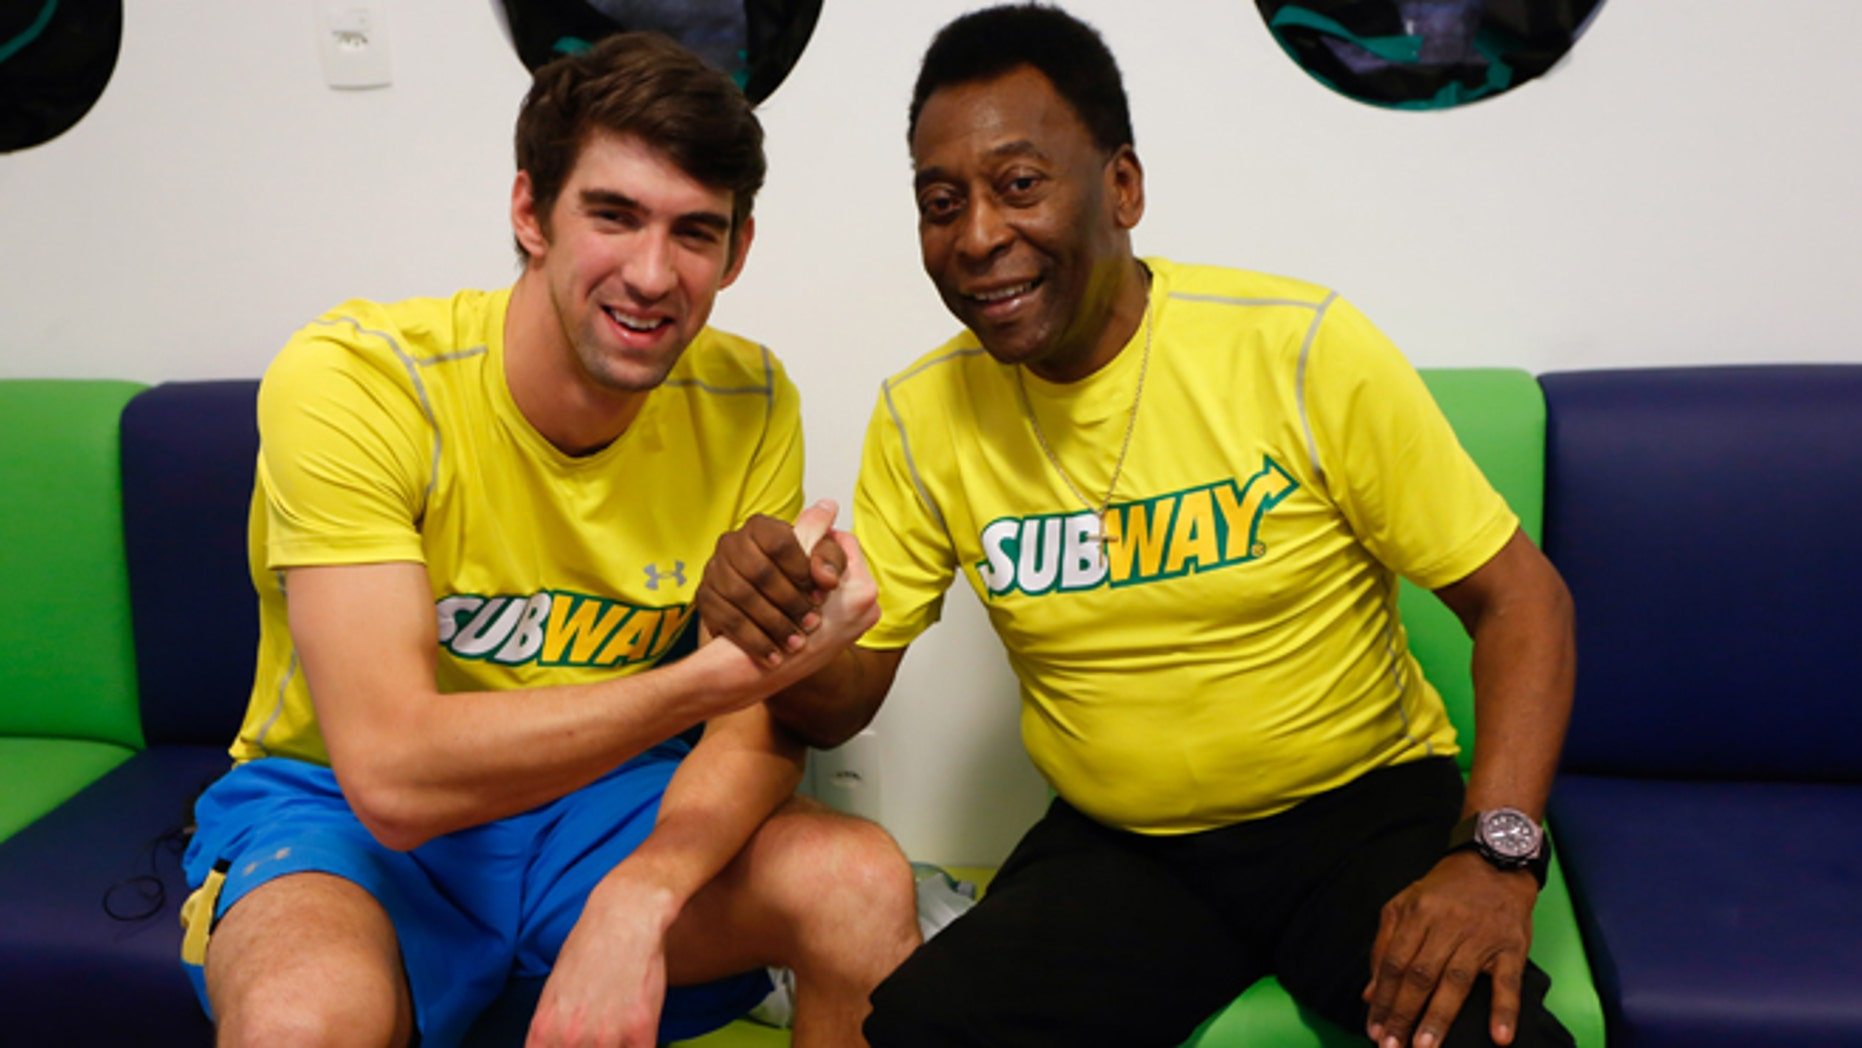 Michael Phelps and Pele at a press conference to promote healthy lifestyle among children on December 04, 2013 in Sao Paulo, Brazil.